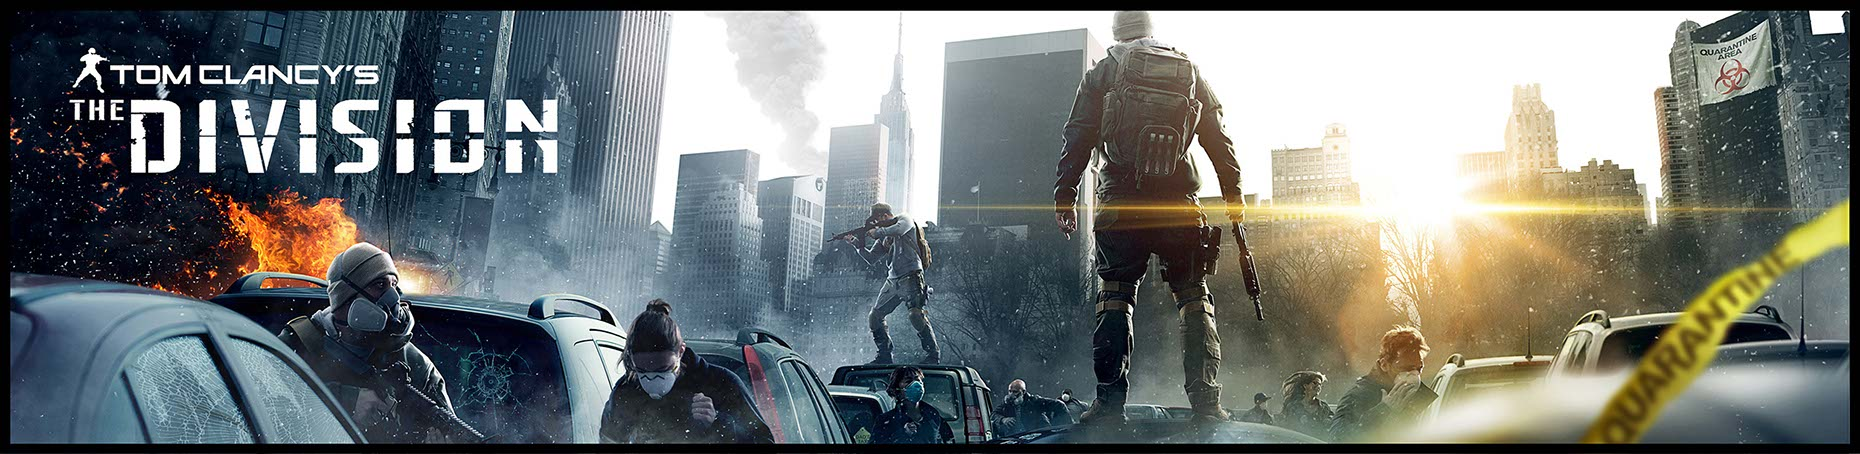 photo-imaging-entertainment-game-imagery-armed-special-forces-team-on-manhattan-street-for-the-Division E3 Banner-Mike Bryan